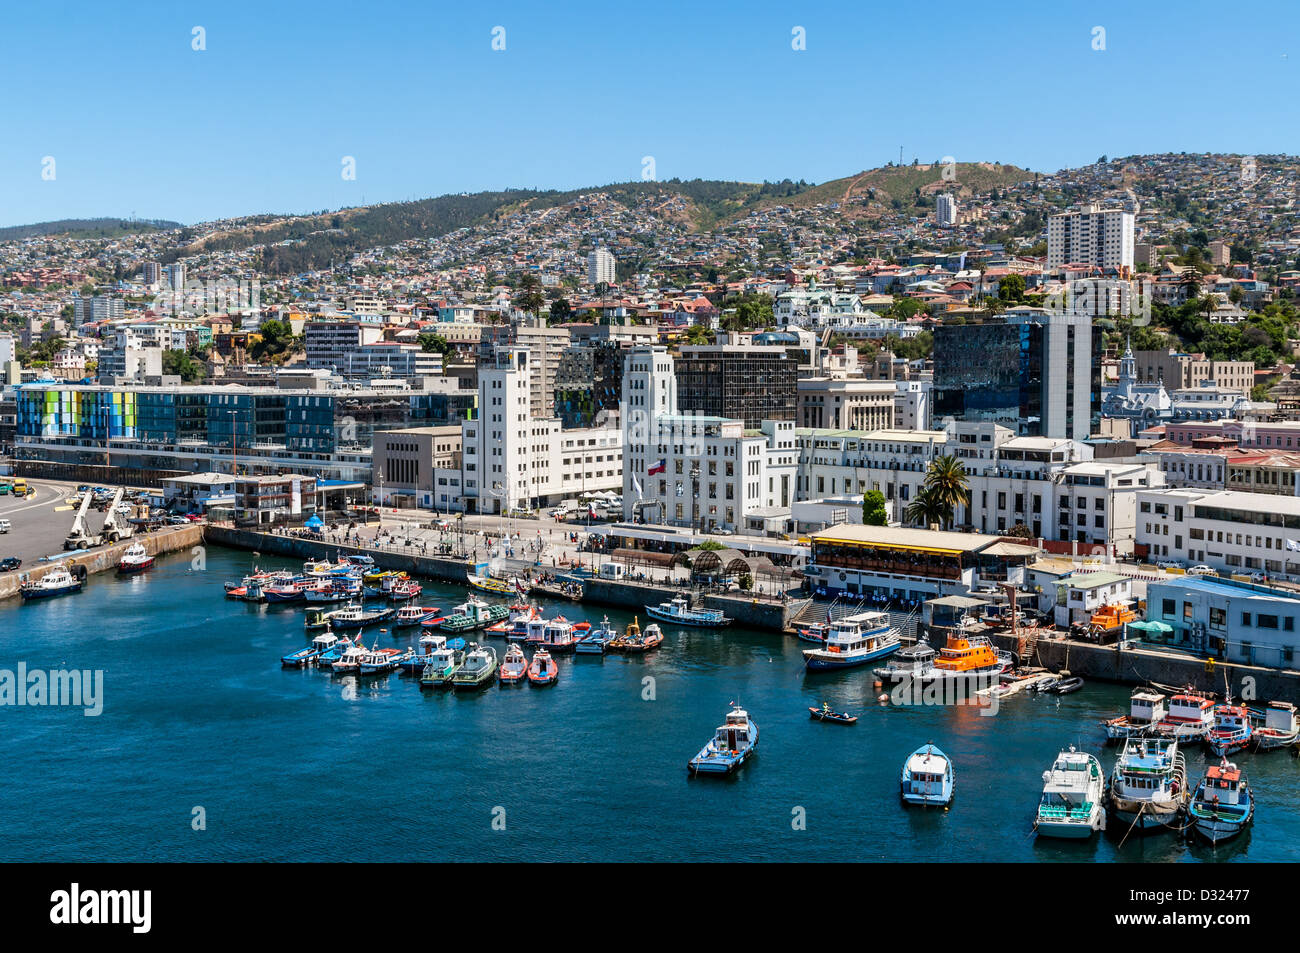 City scape of Valparaiso as seen from the harbor. - Stock Image